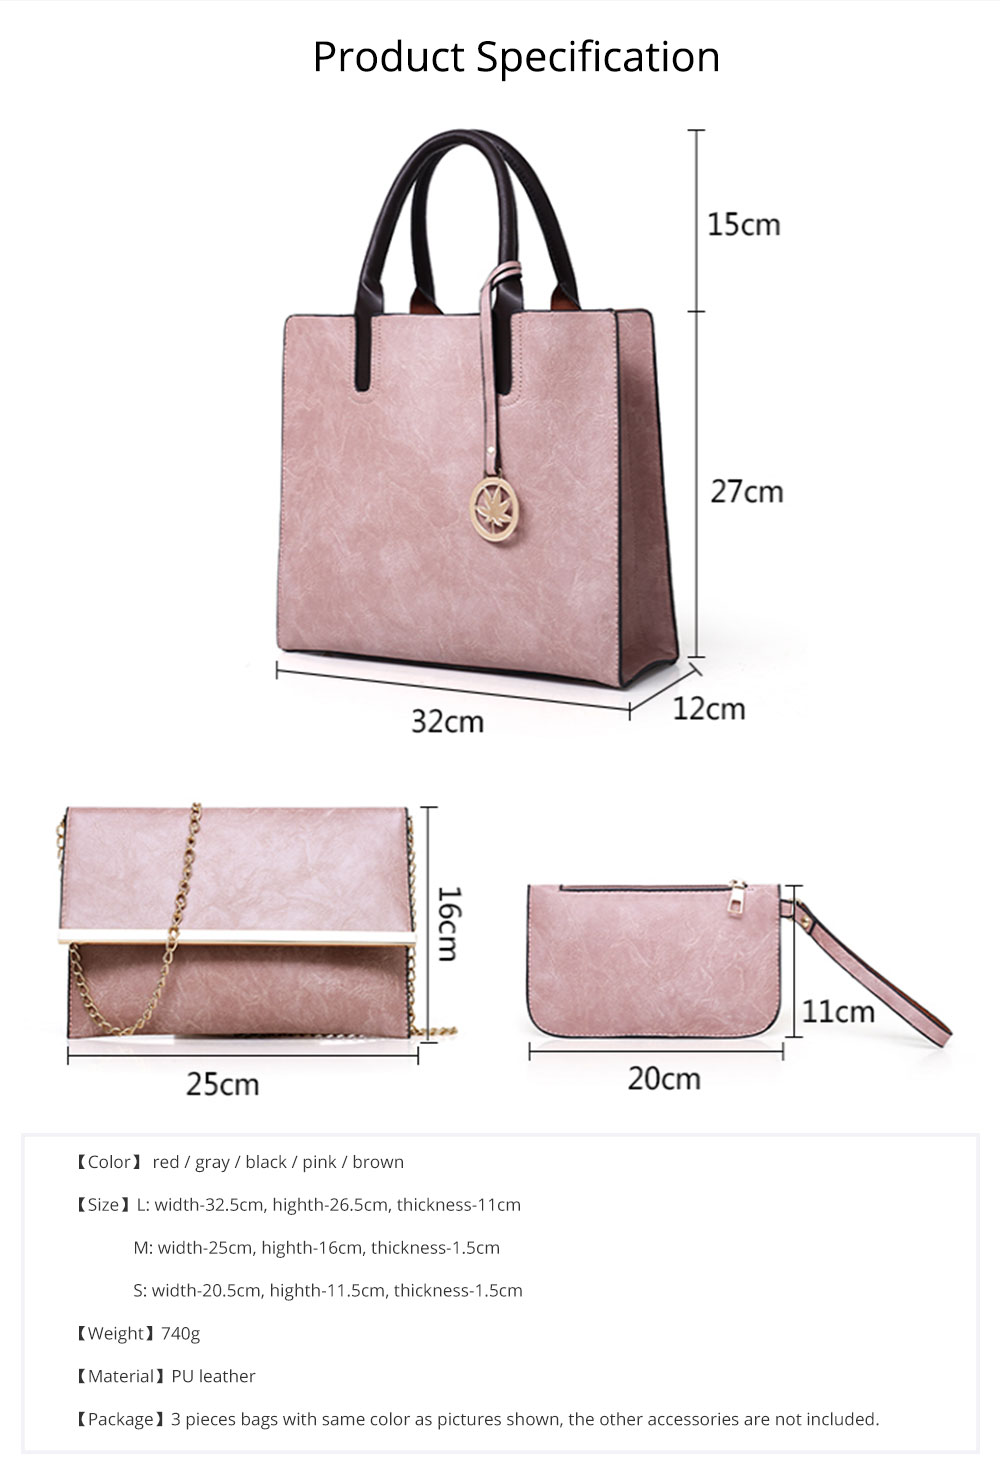 Ladies Handbag Set - Frosted PU Leather Lady Handbag & Shoulder Bag & Tote, Fashion Satchel Slim Purse 3PCS 9